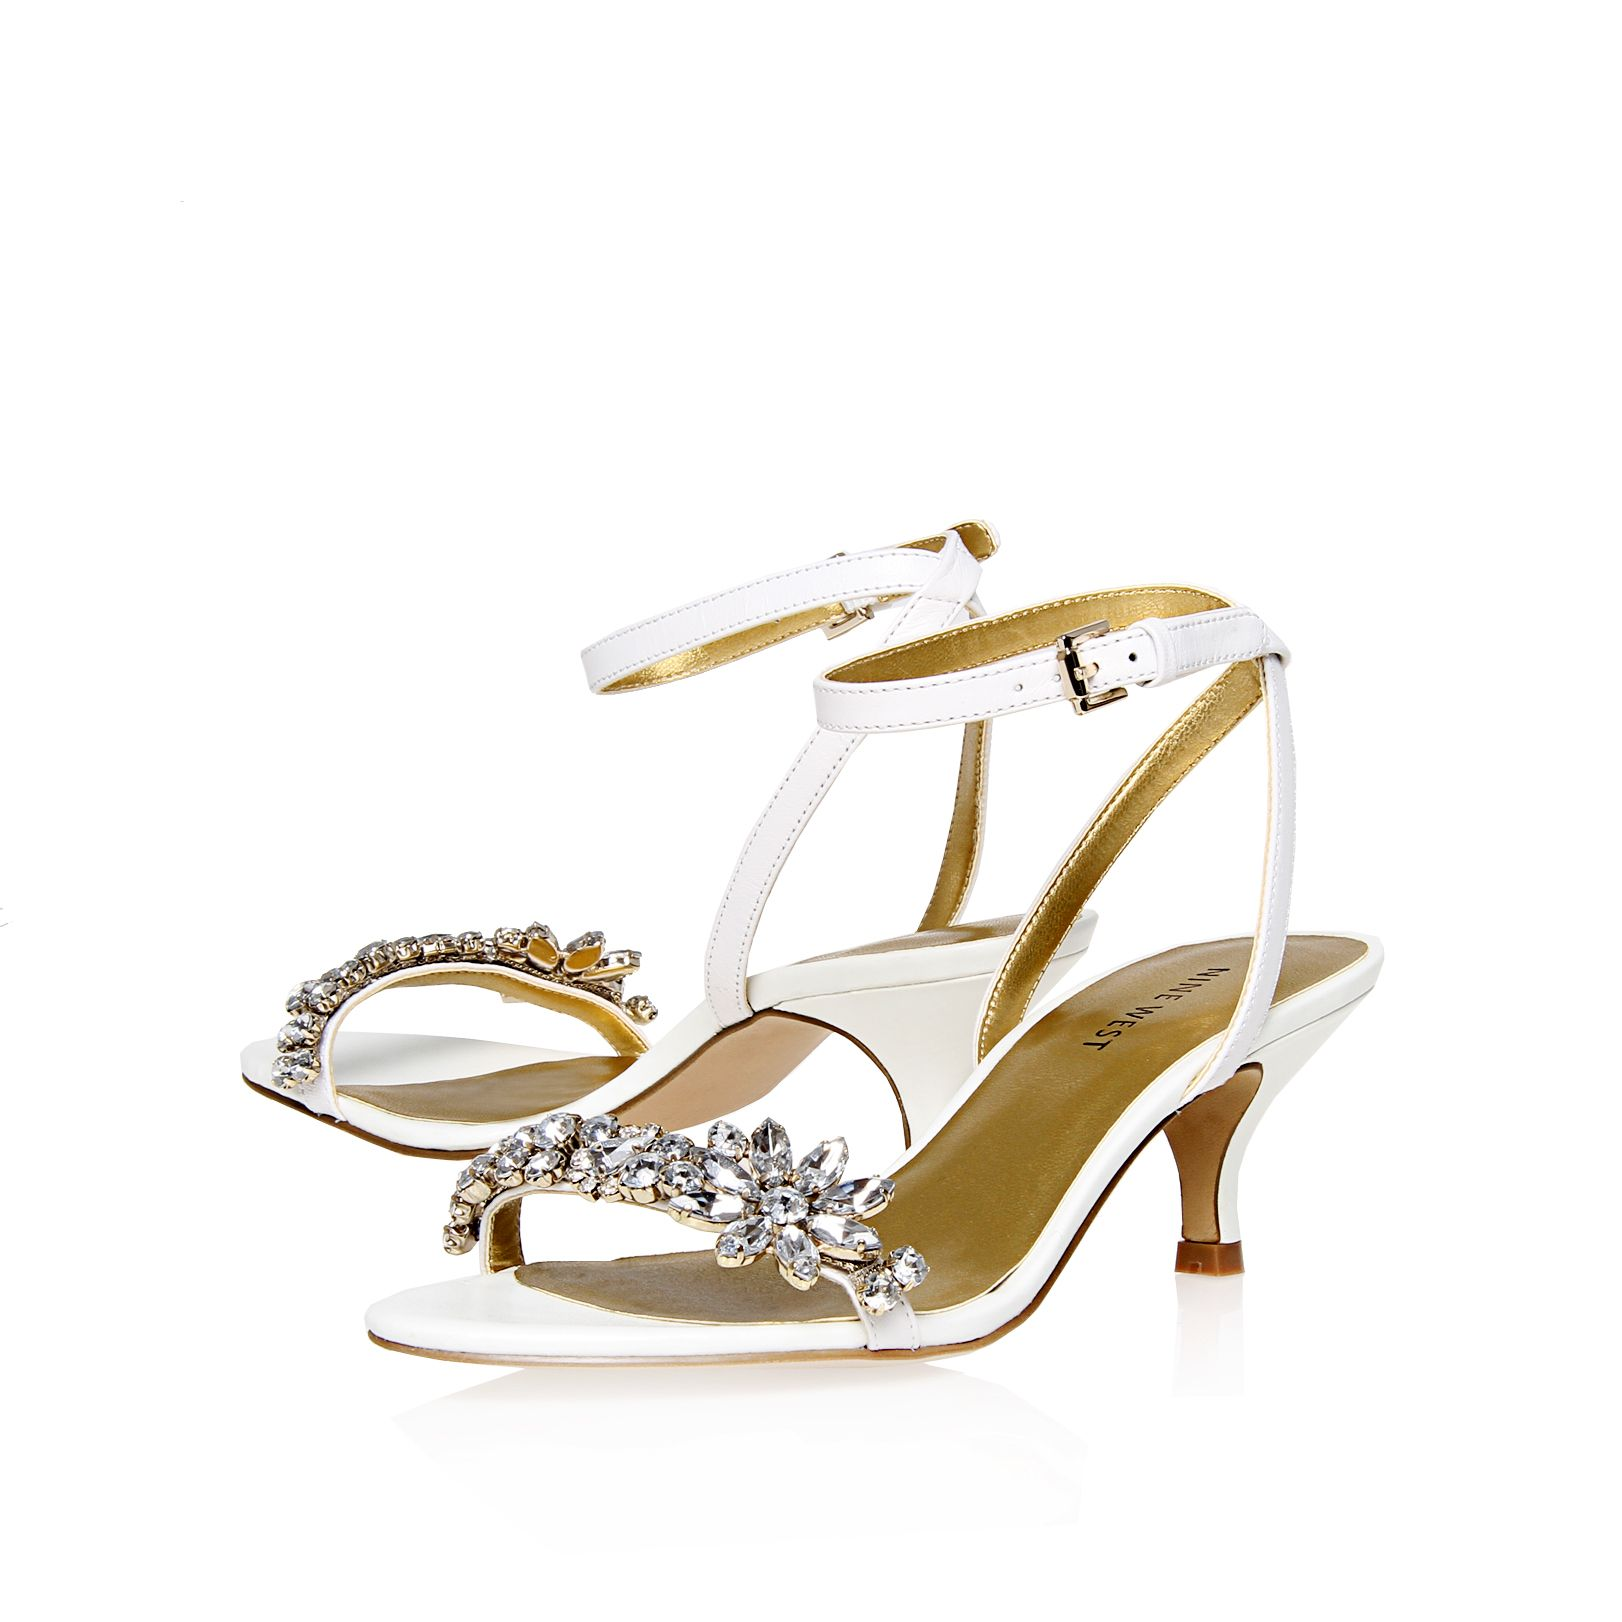 Offcourse diamante embellished sandals